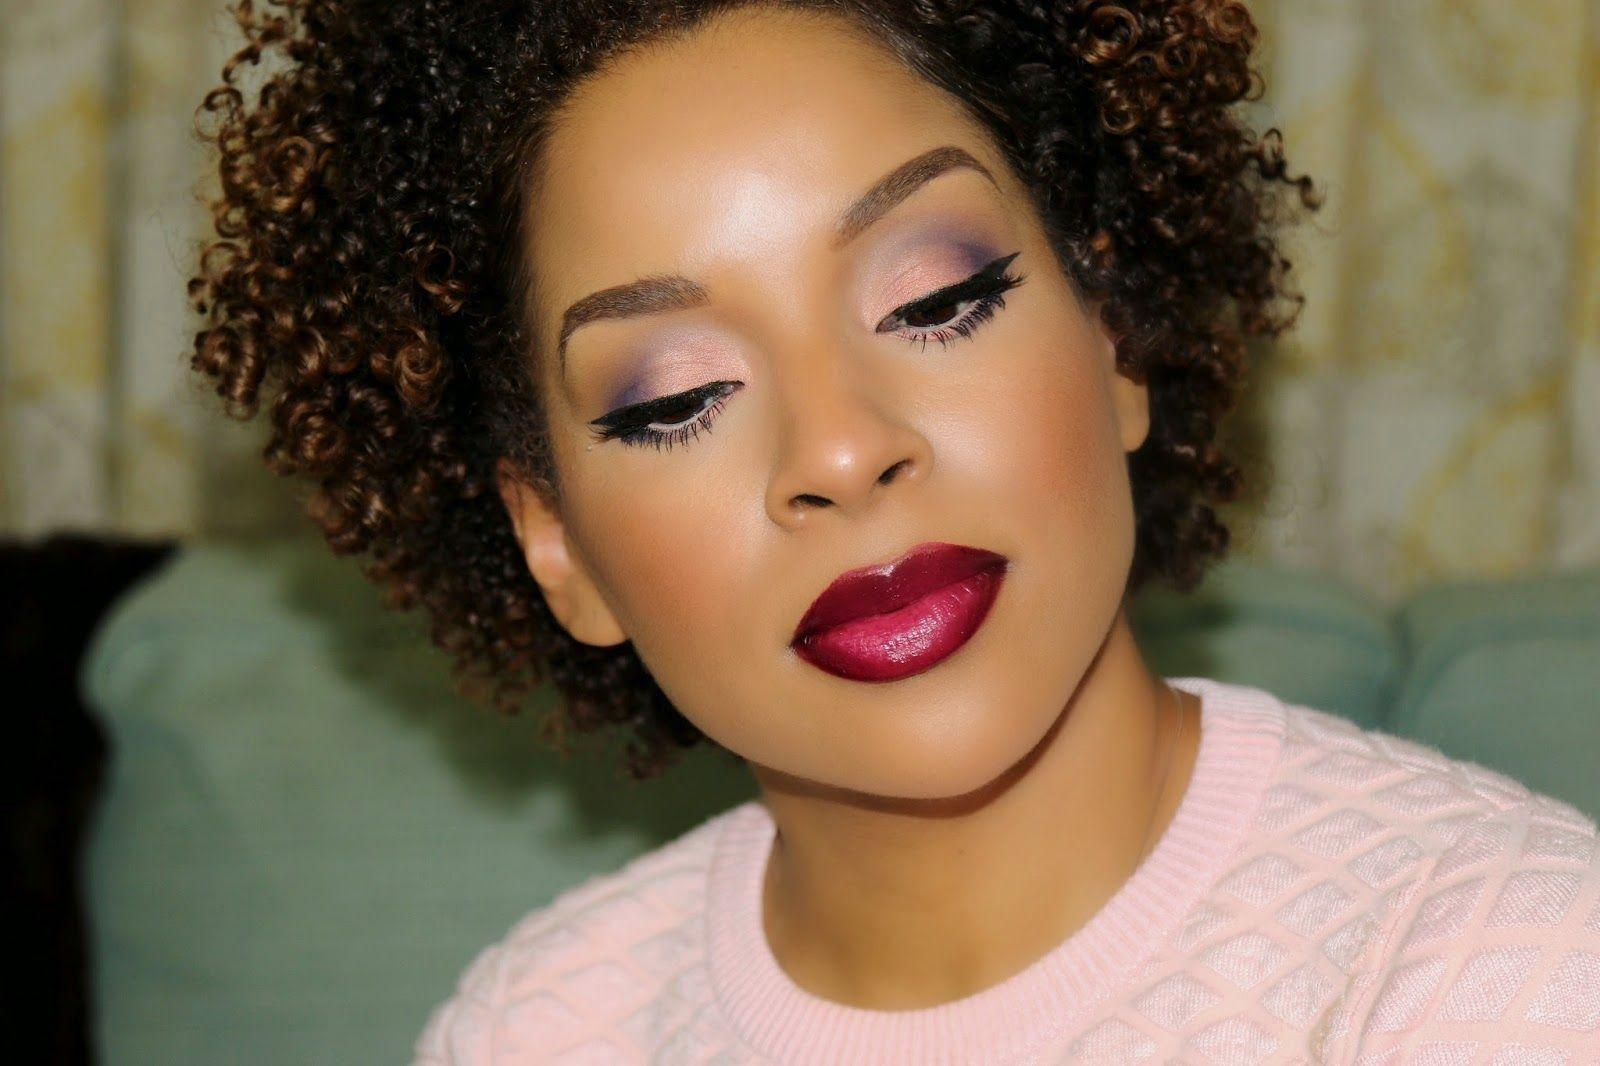 """Foto: Reprodução / <a href=""""http://www.beautybylee.com/2015/02/beautybylees-romantic-valentines-may.html"""" target=""""_blank""""> Beauty by Lee</a>"""